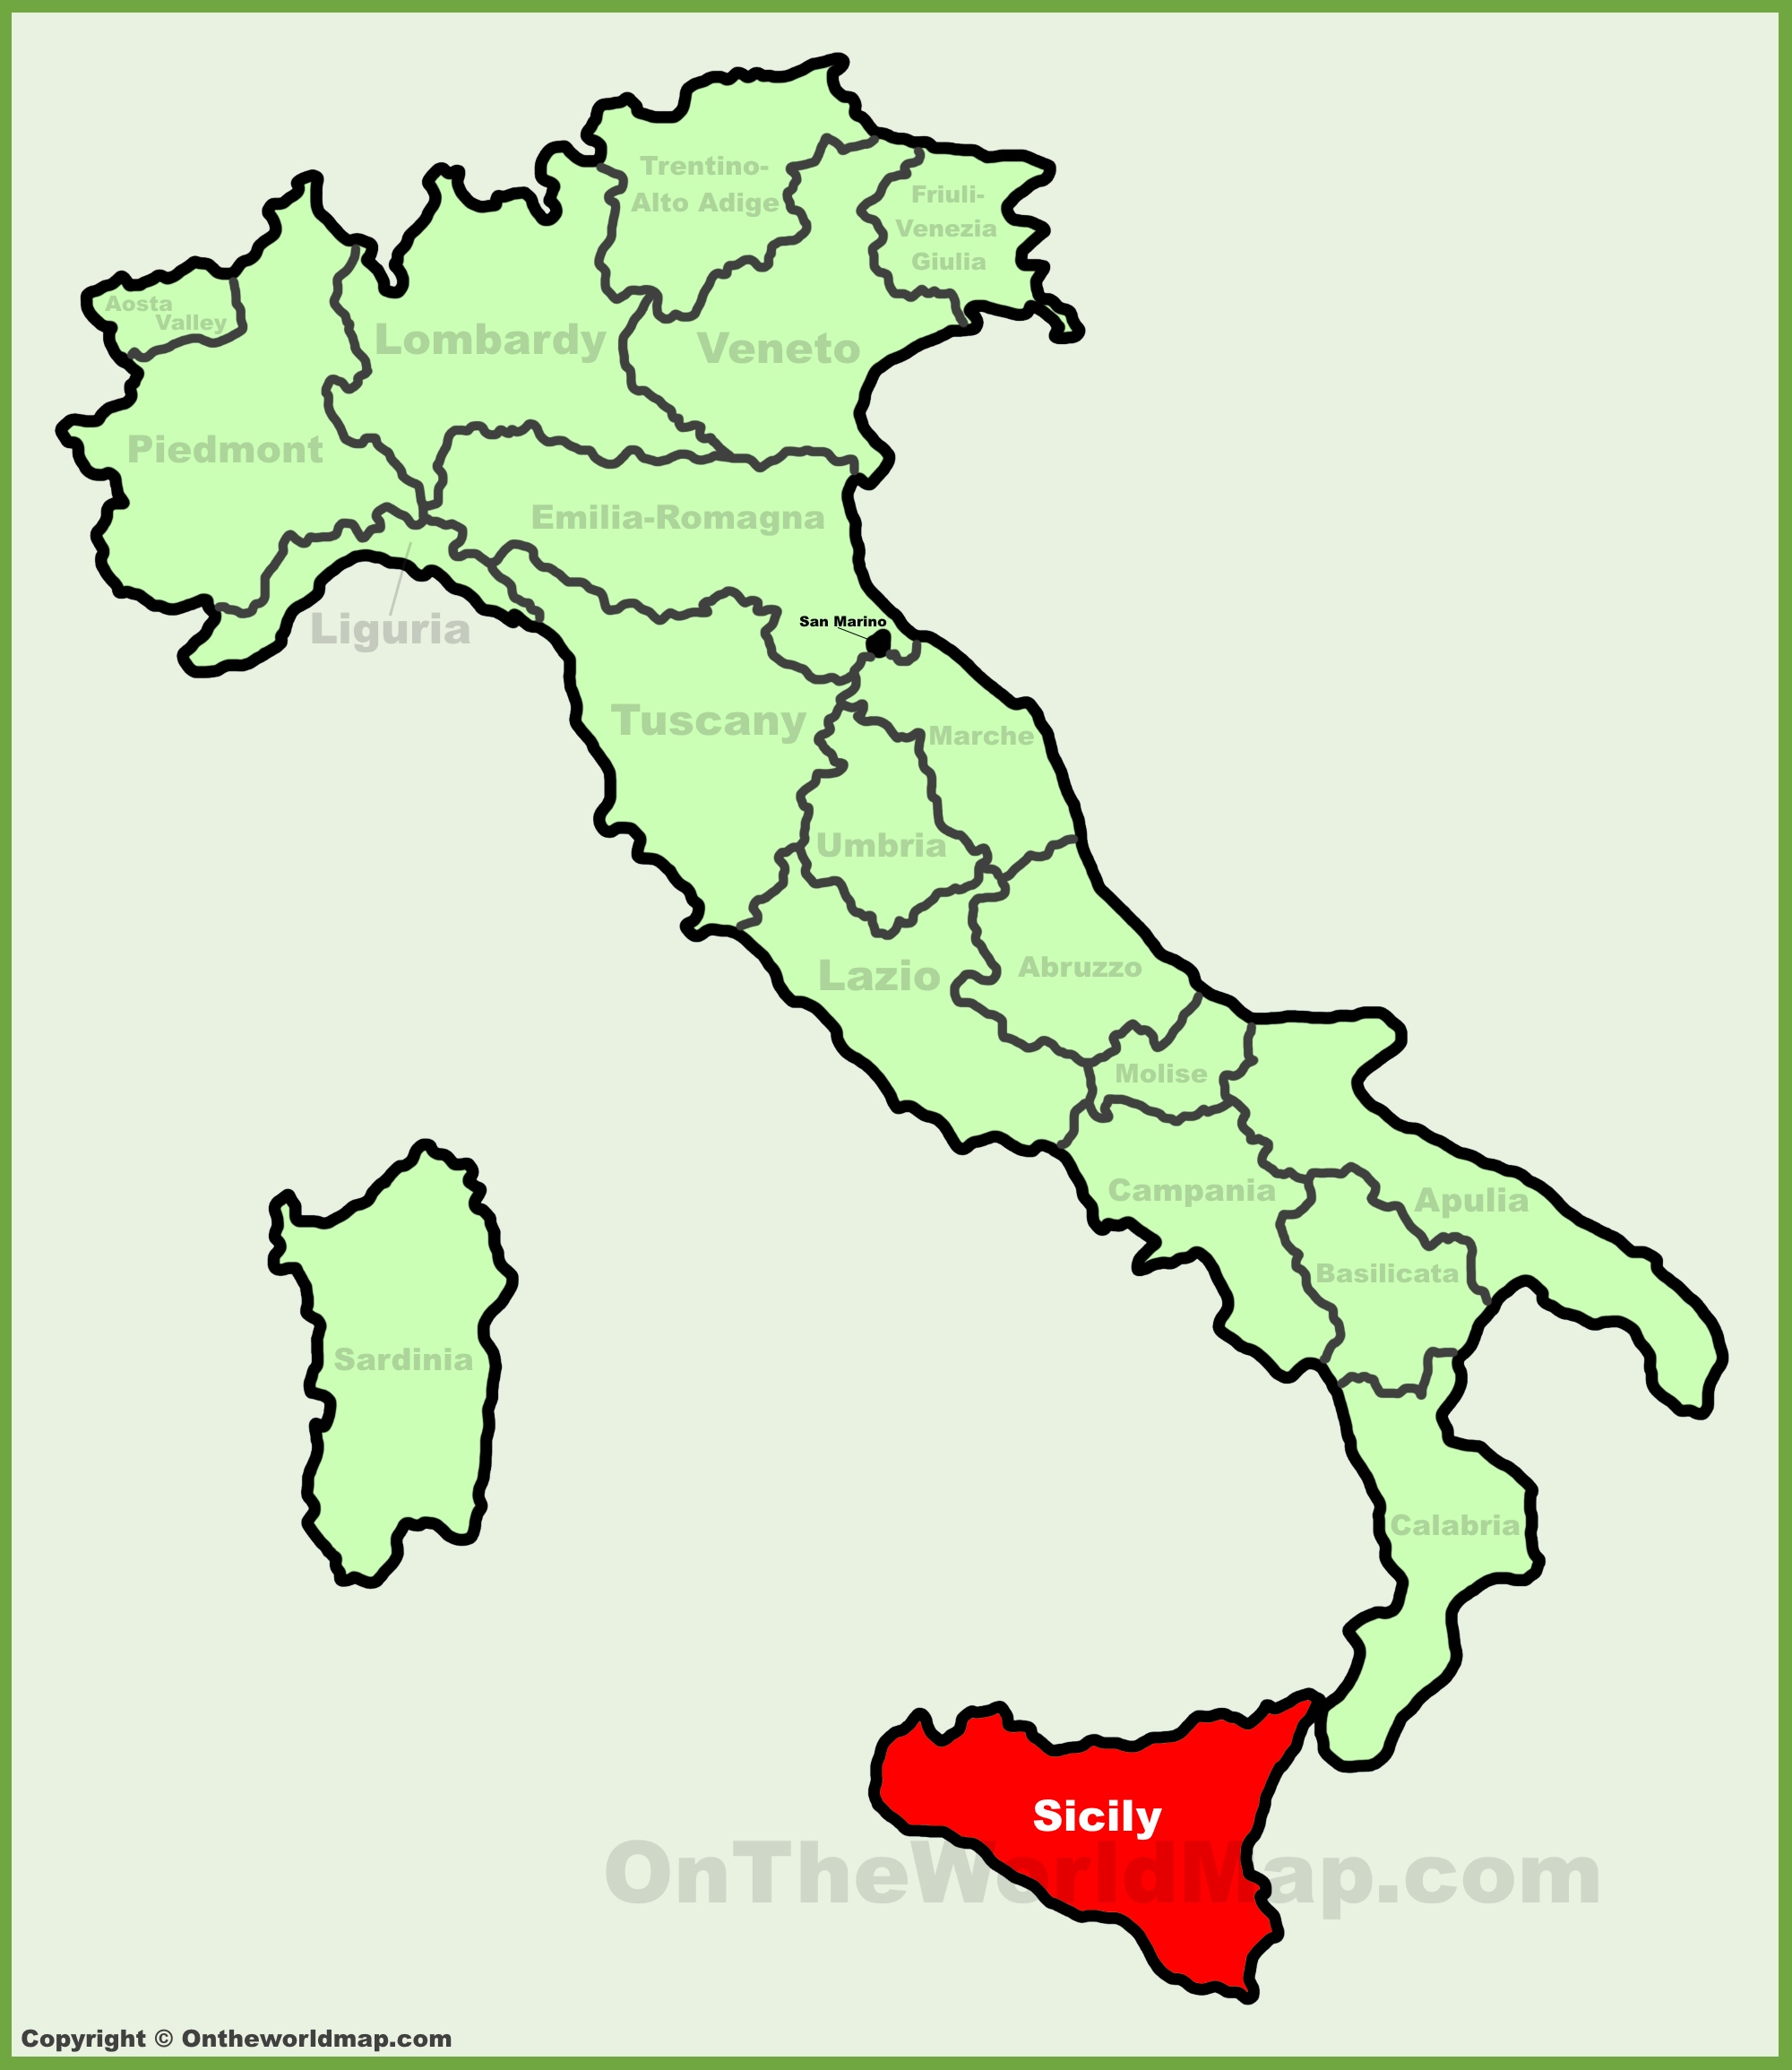 Cities In Sicily Italy Map.Sicily Maps Italy Maps Of Sicily Sicilia